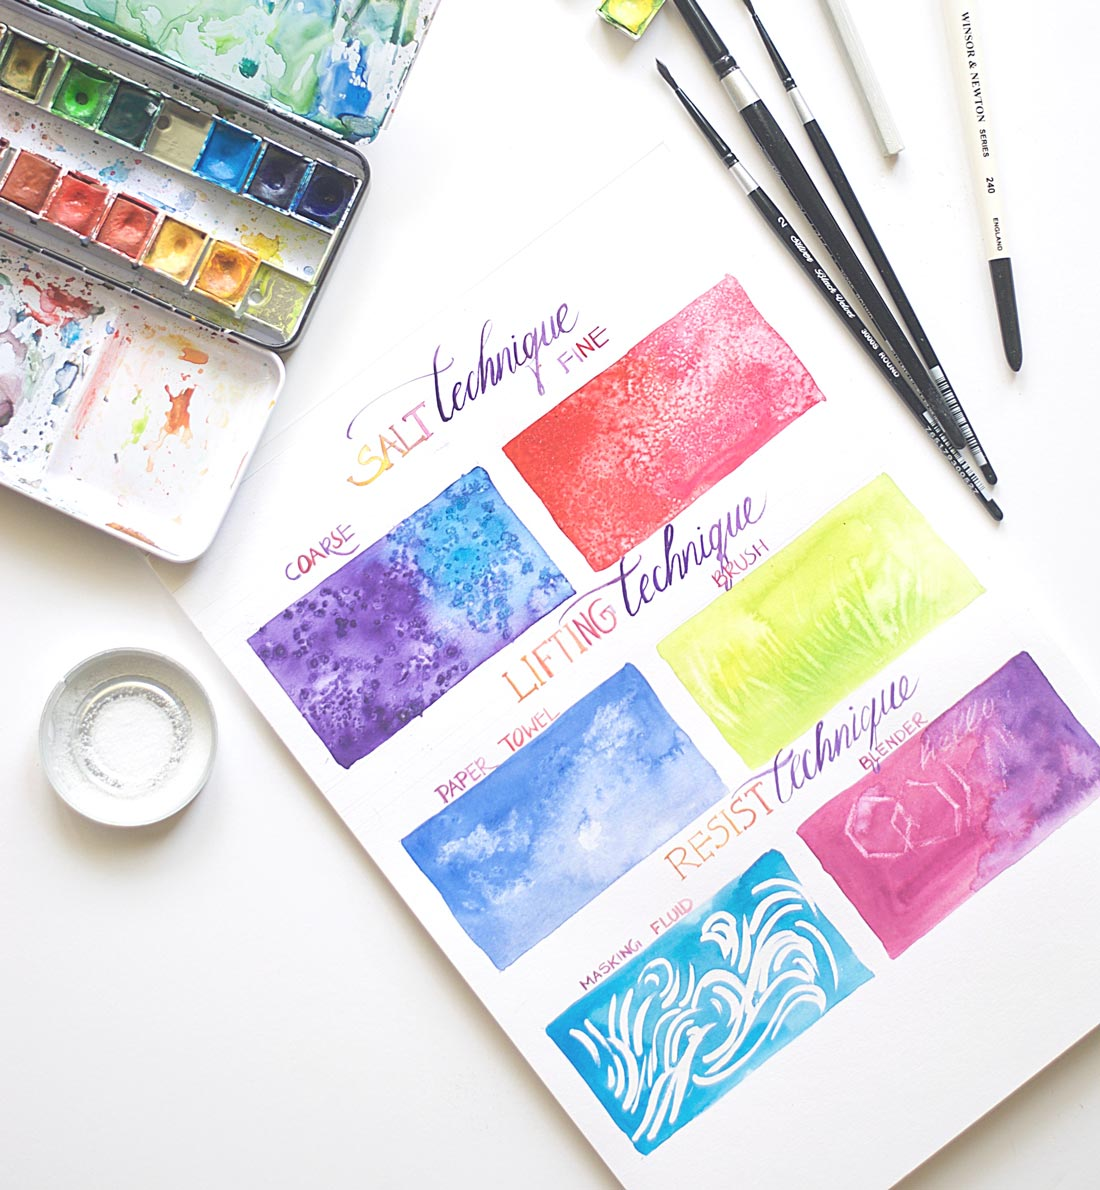 Easy beginner watercolor techniques inkstruck studio for Easy watercolor for beginners